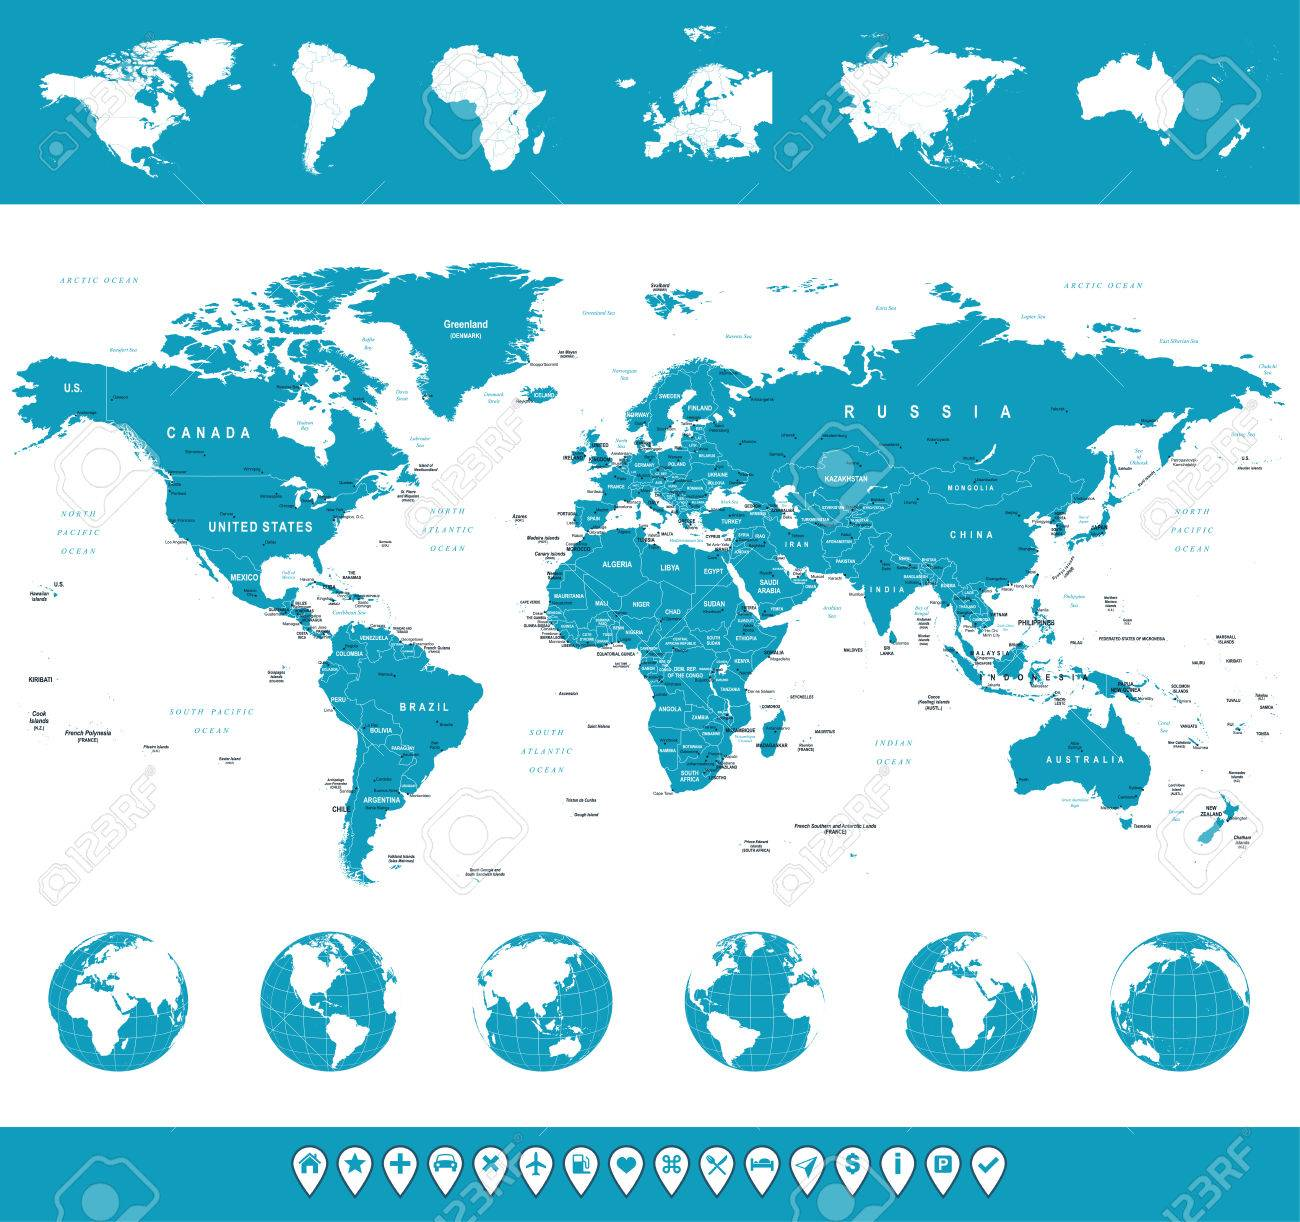 World map globes continents navigation icons illustration world map globes continents navigation icons illustration stock vector 43473879 gumiabroncs Choice Image